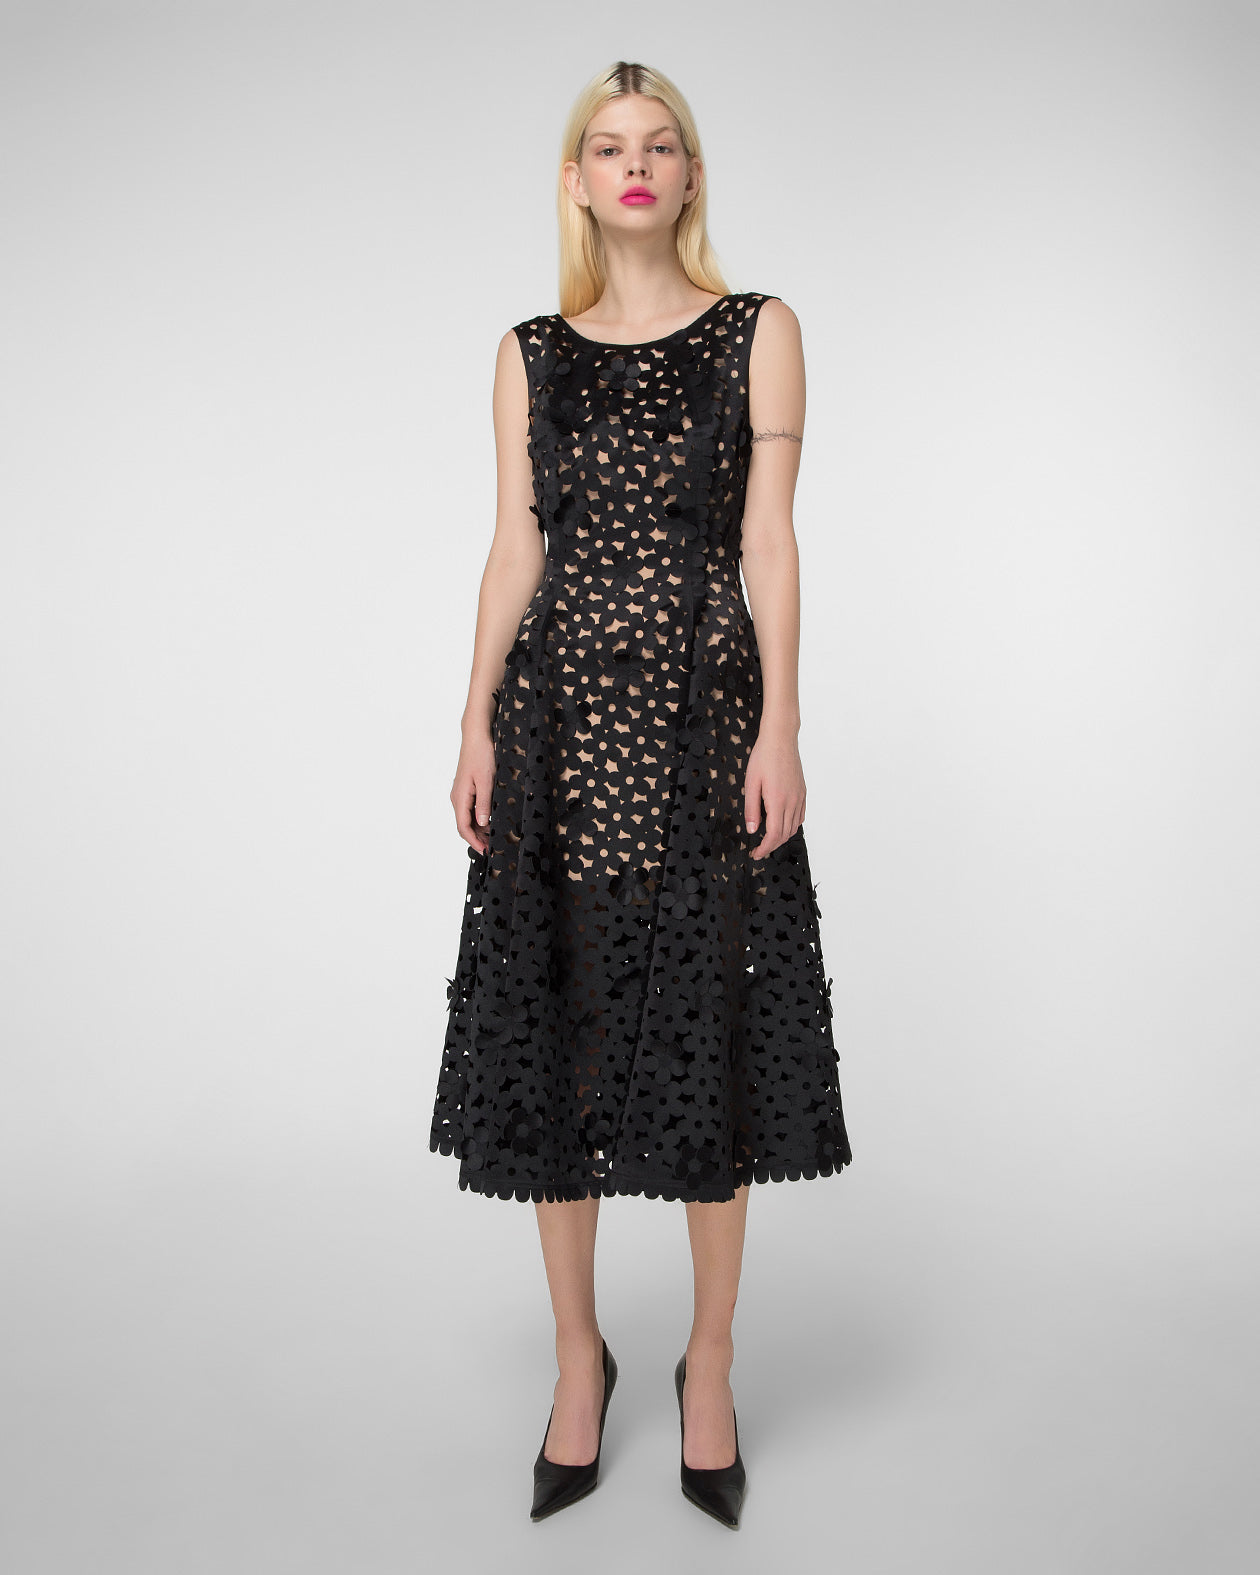 Fit & flare laser-cut dress with floral appliques